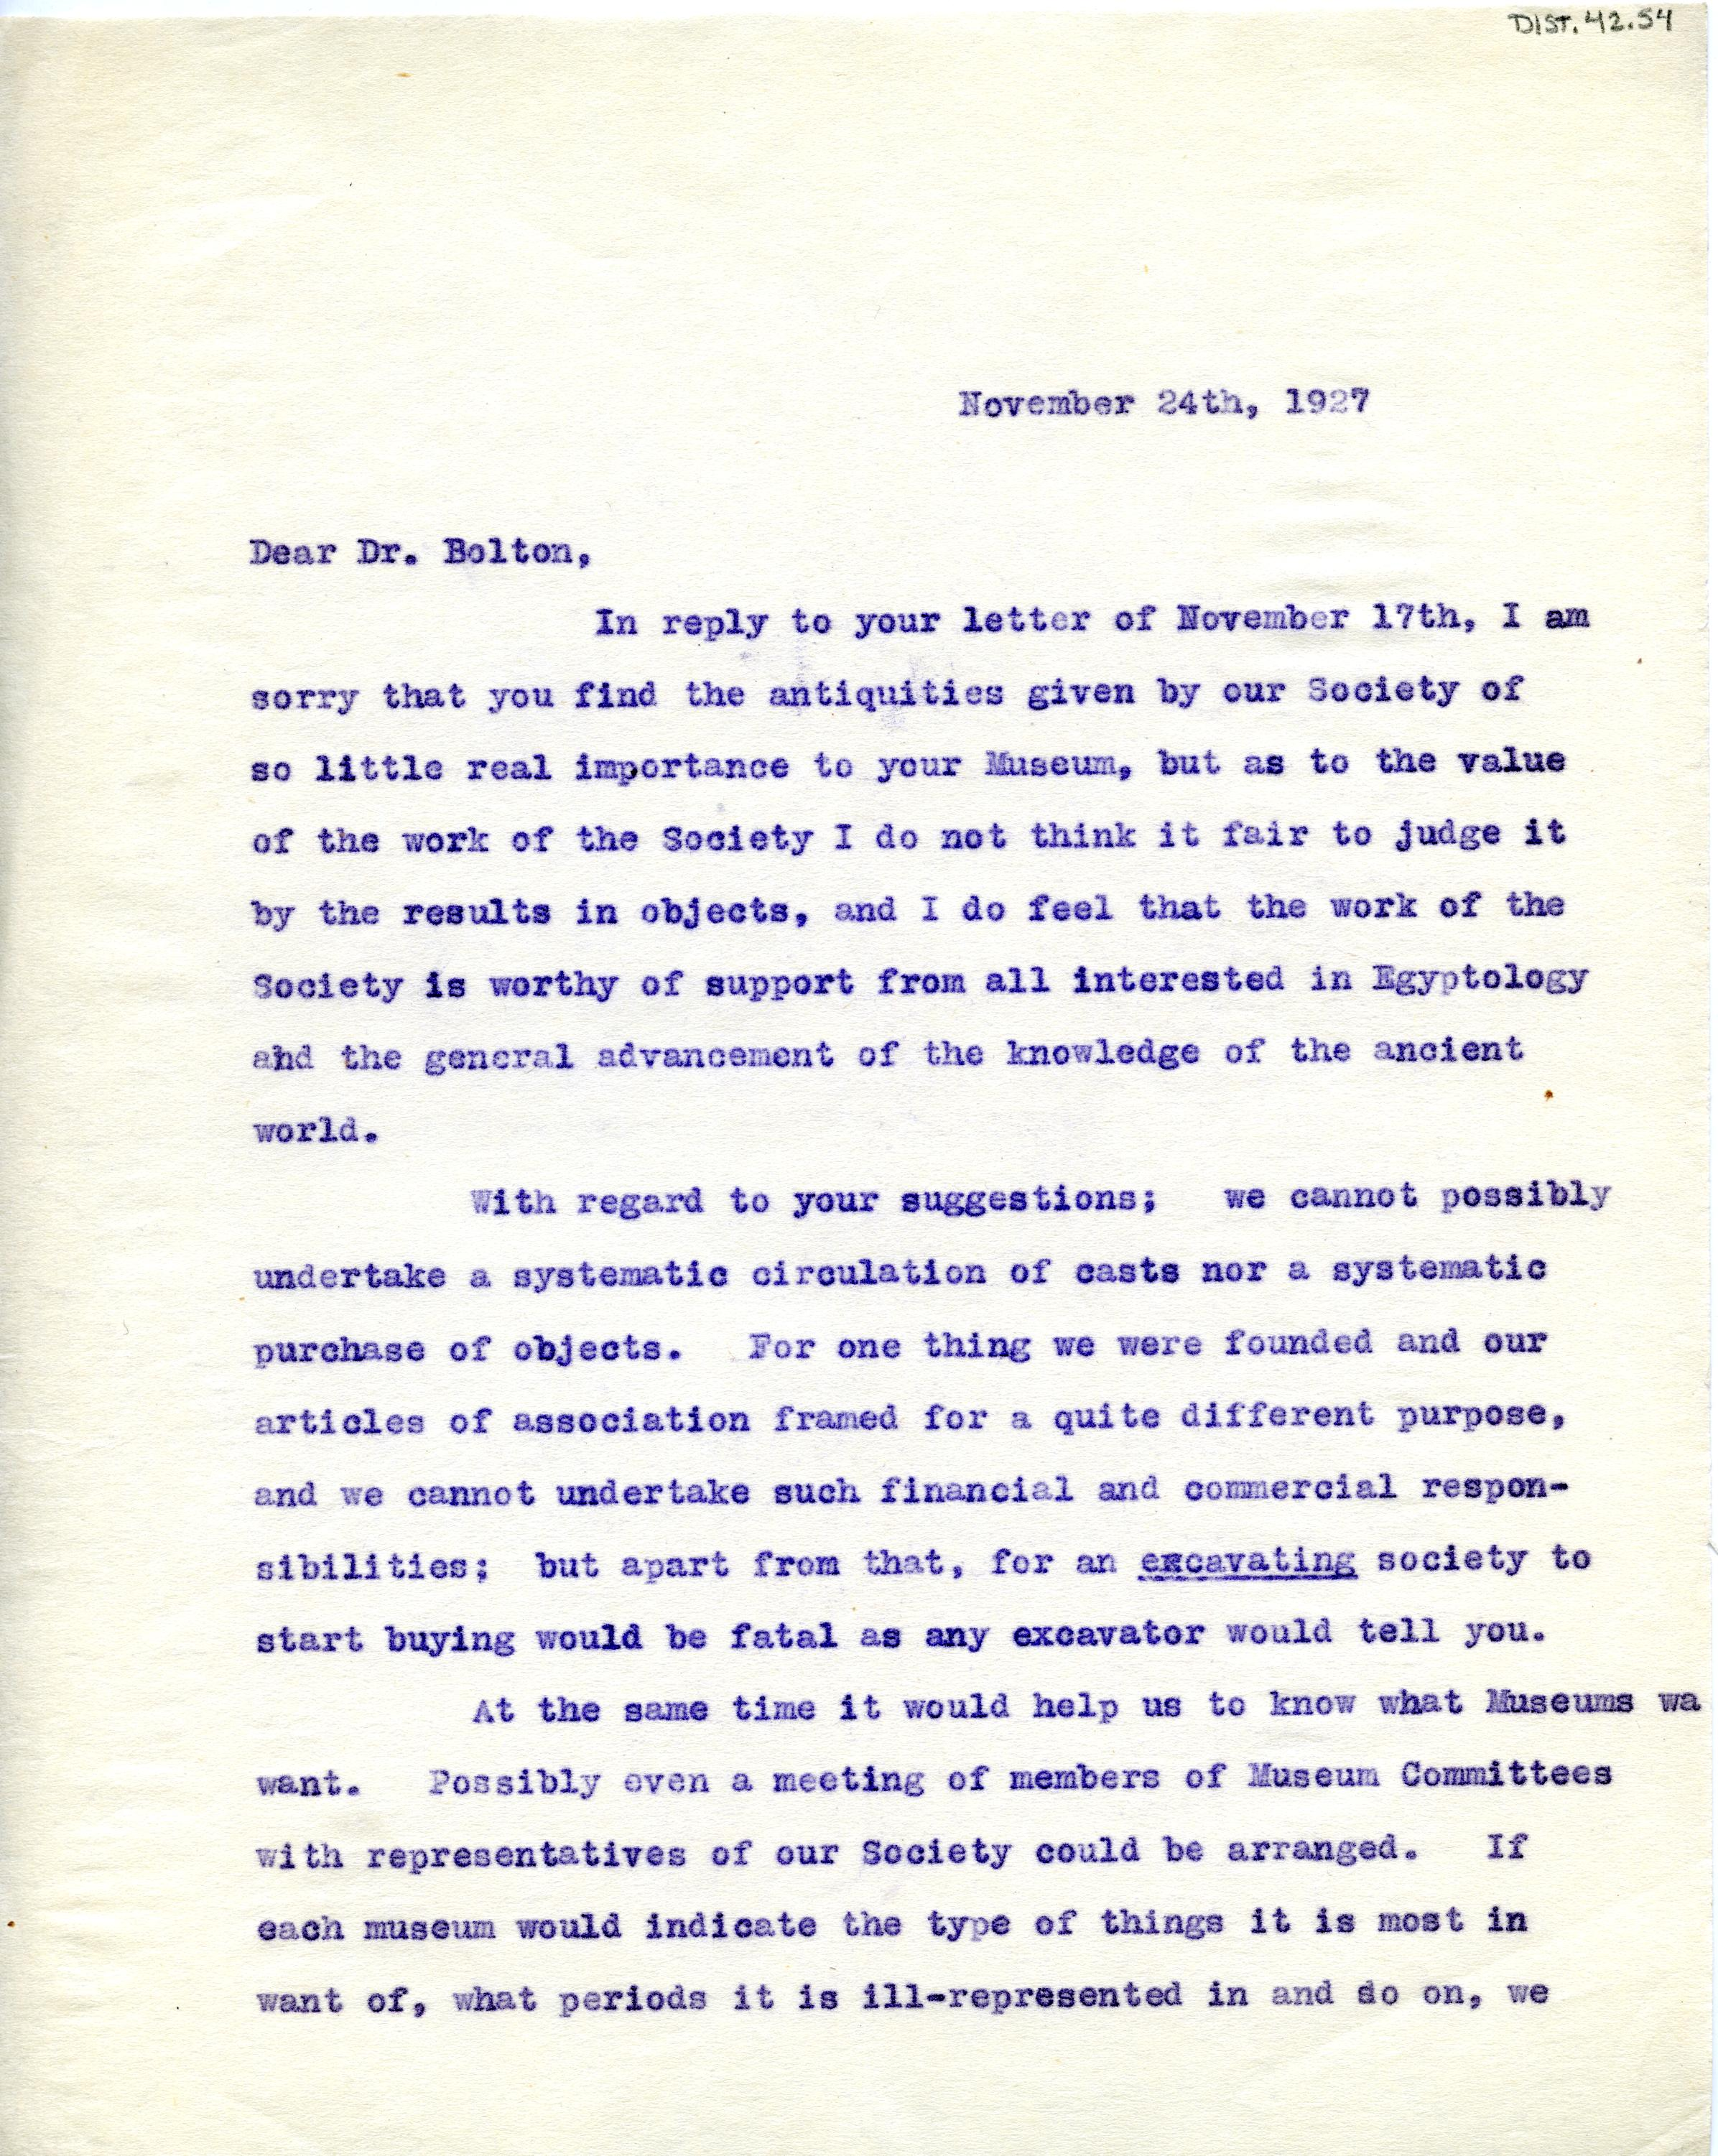 1922-71 Miscellaneous correspondence with museums DIST.42.54a